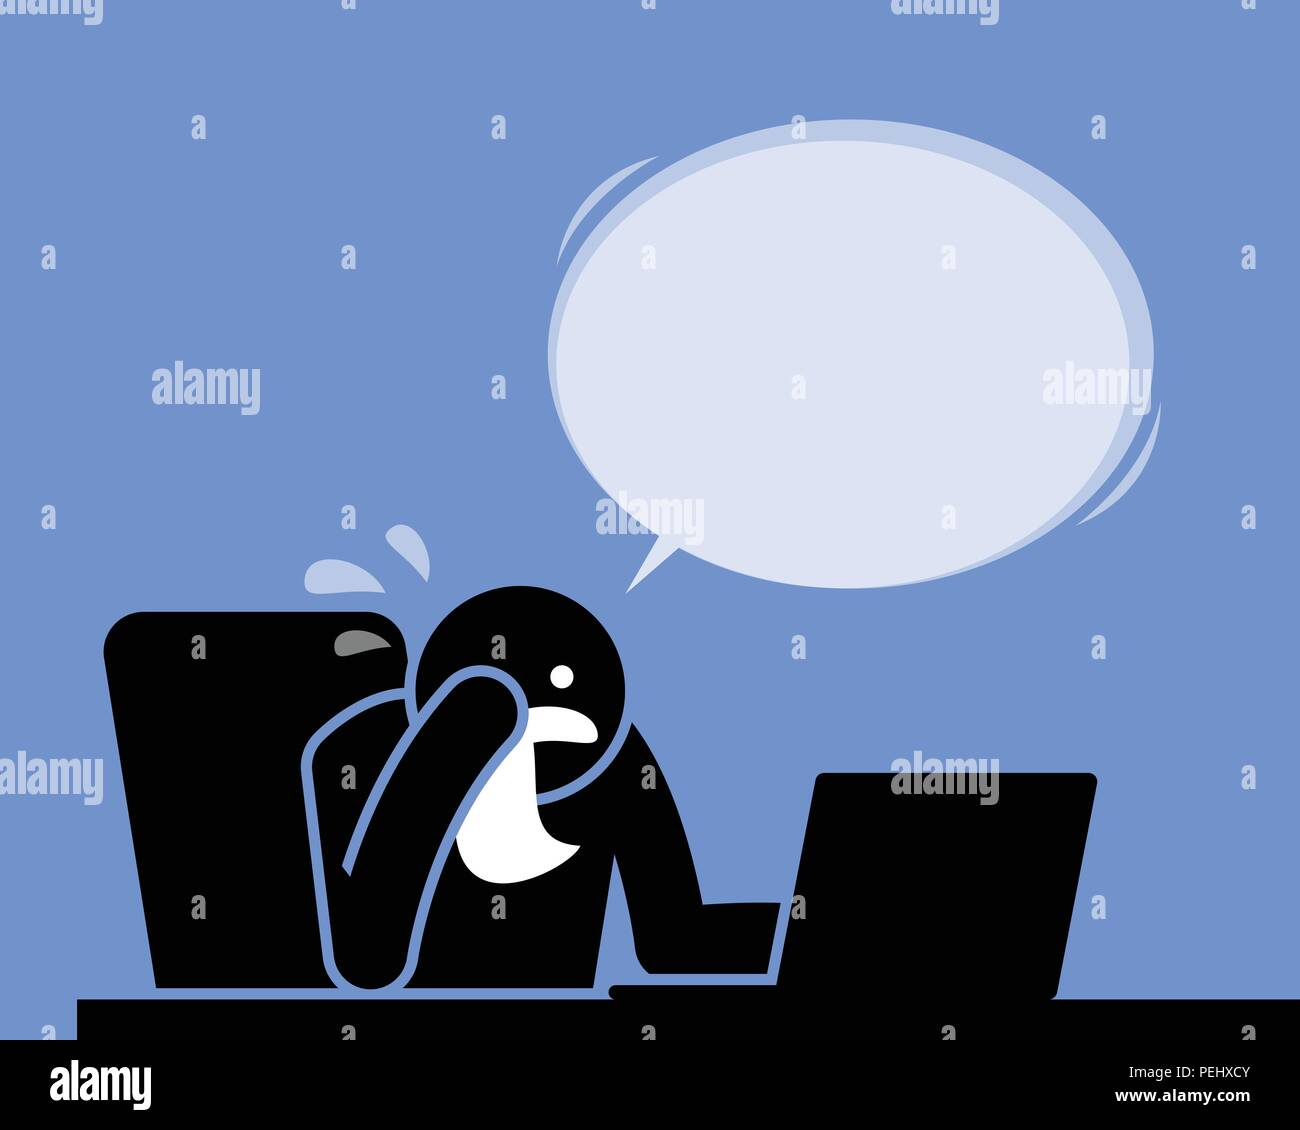 He must have read something sad, depressing, and heartbreaking from the Internet. - Stock Vector